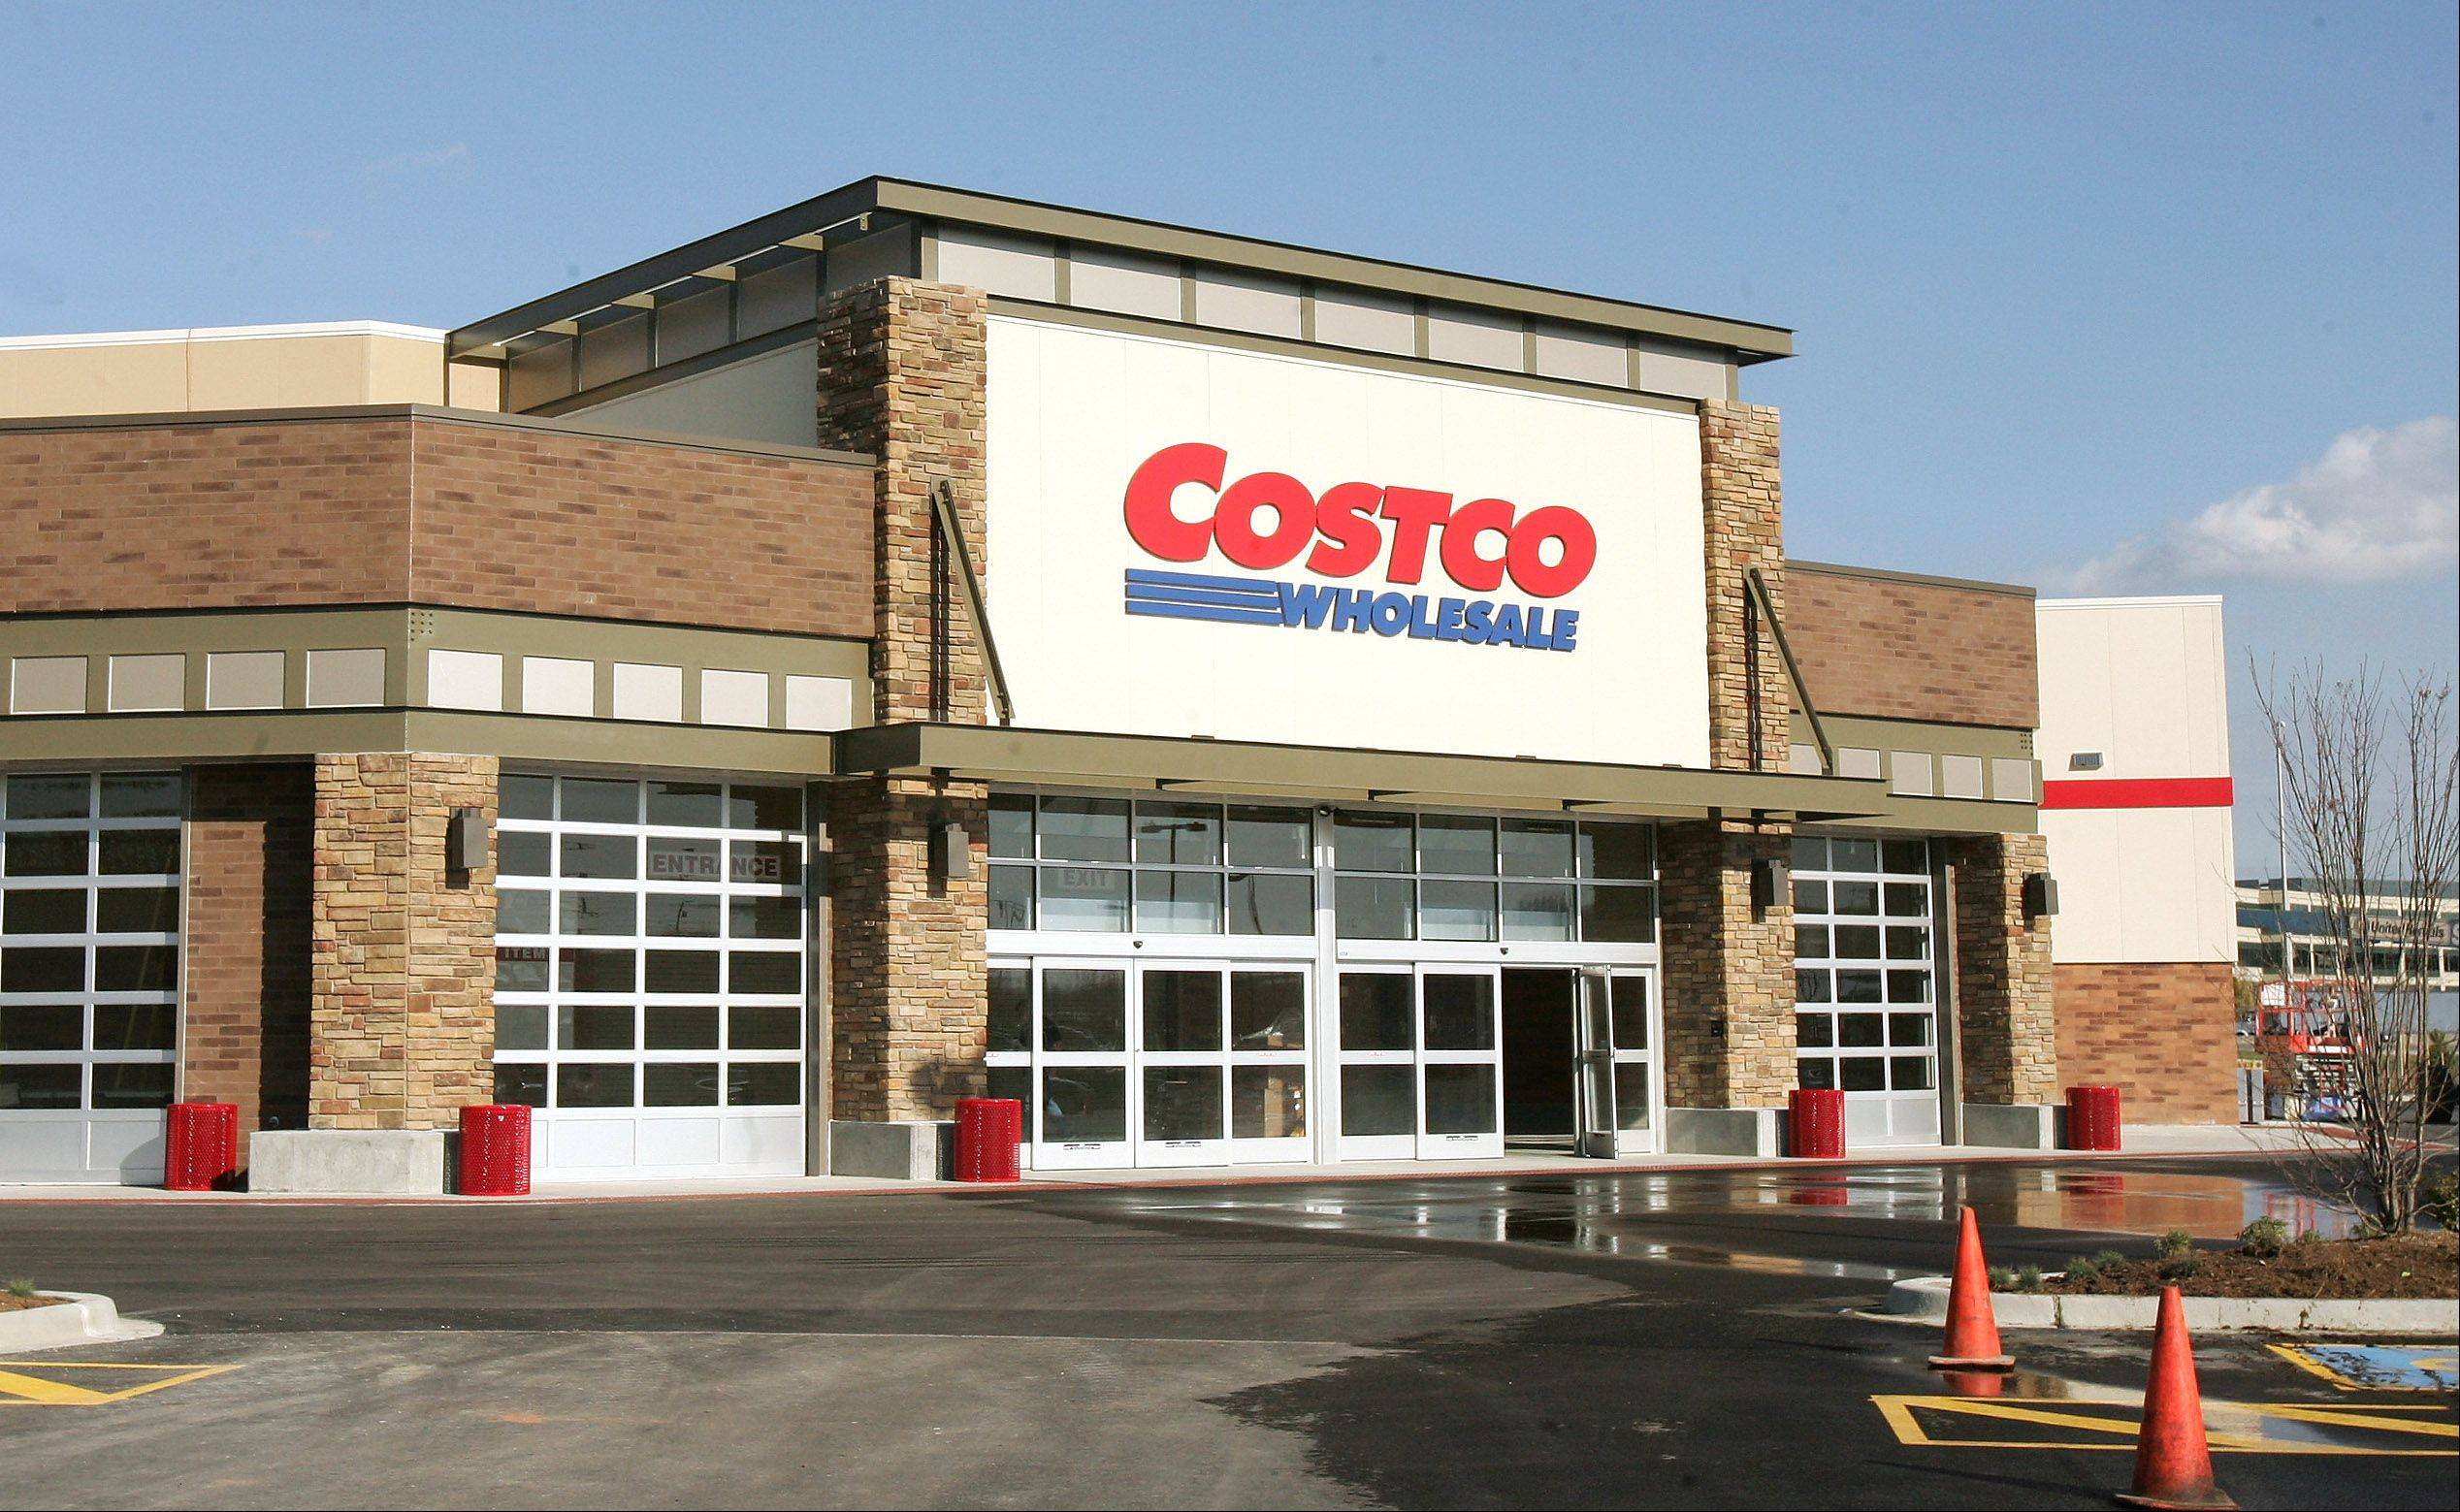 Gilbert R. Boucher III | Daily Herald file photo Costco's sales at stores open at least a year rose 3 percent in October, beating Wall Street's expectations.